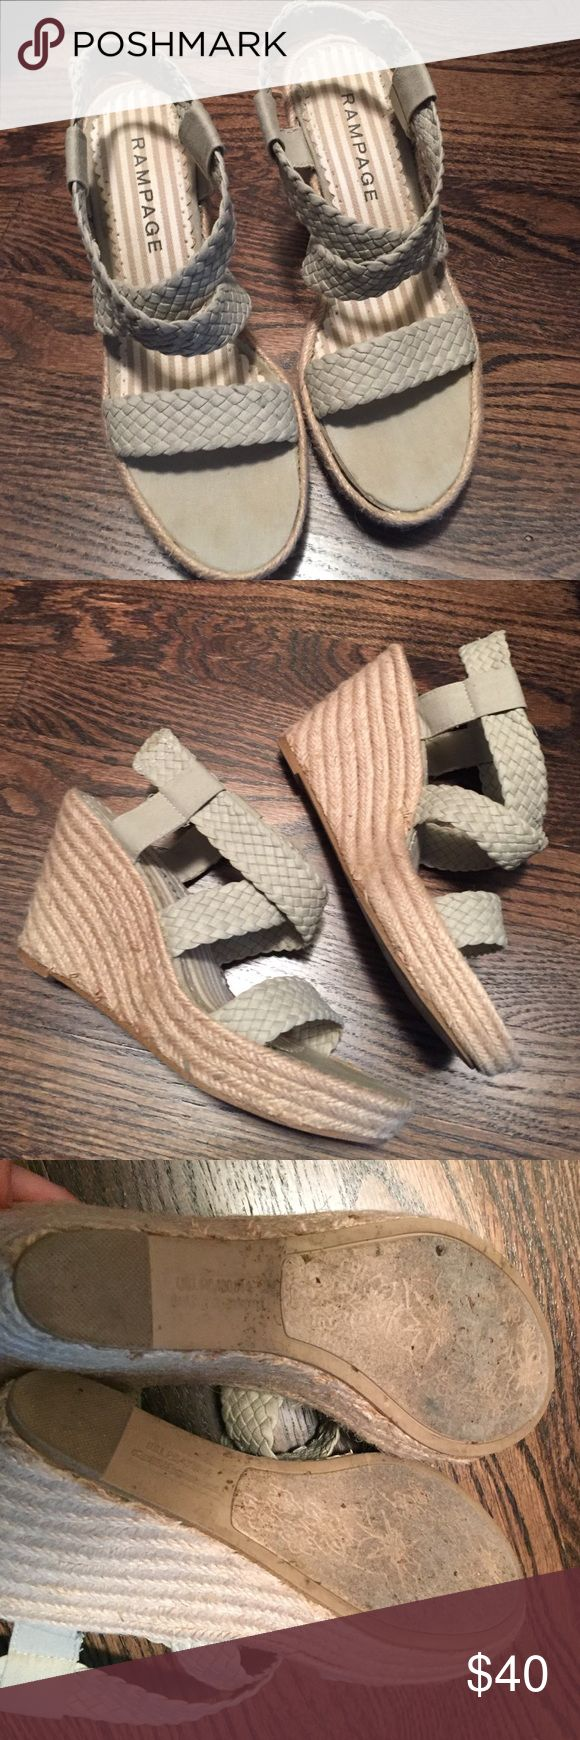 Rampage grey espadrille wedges 7.5 Espadrille wedges. Grey leather straps size 7.5 Rampage Shoes Espadrilles